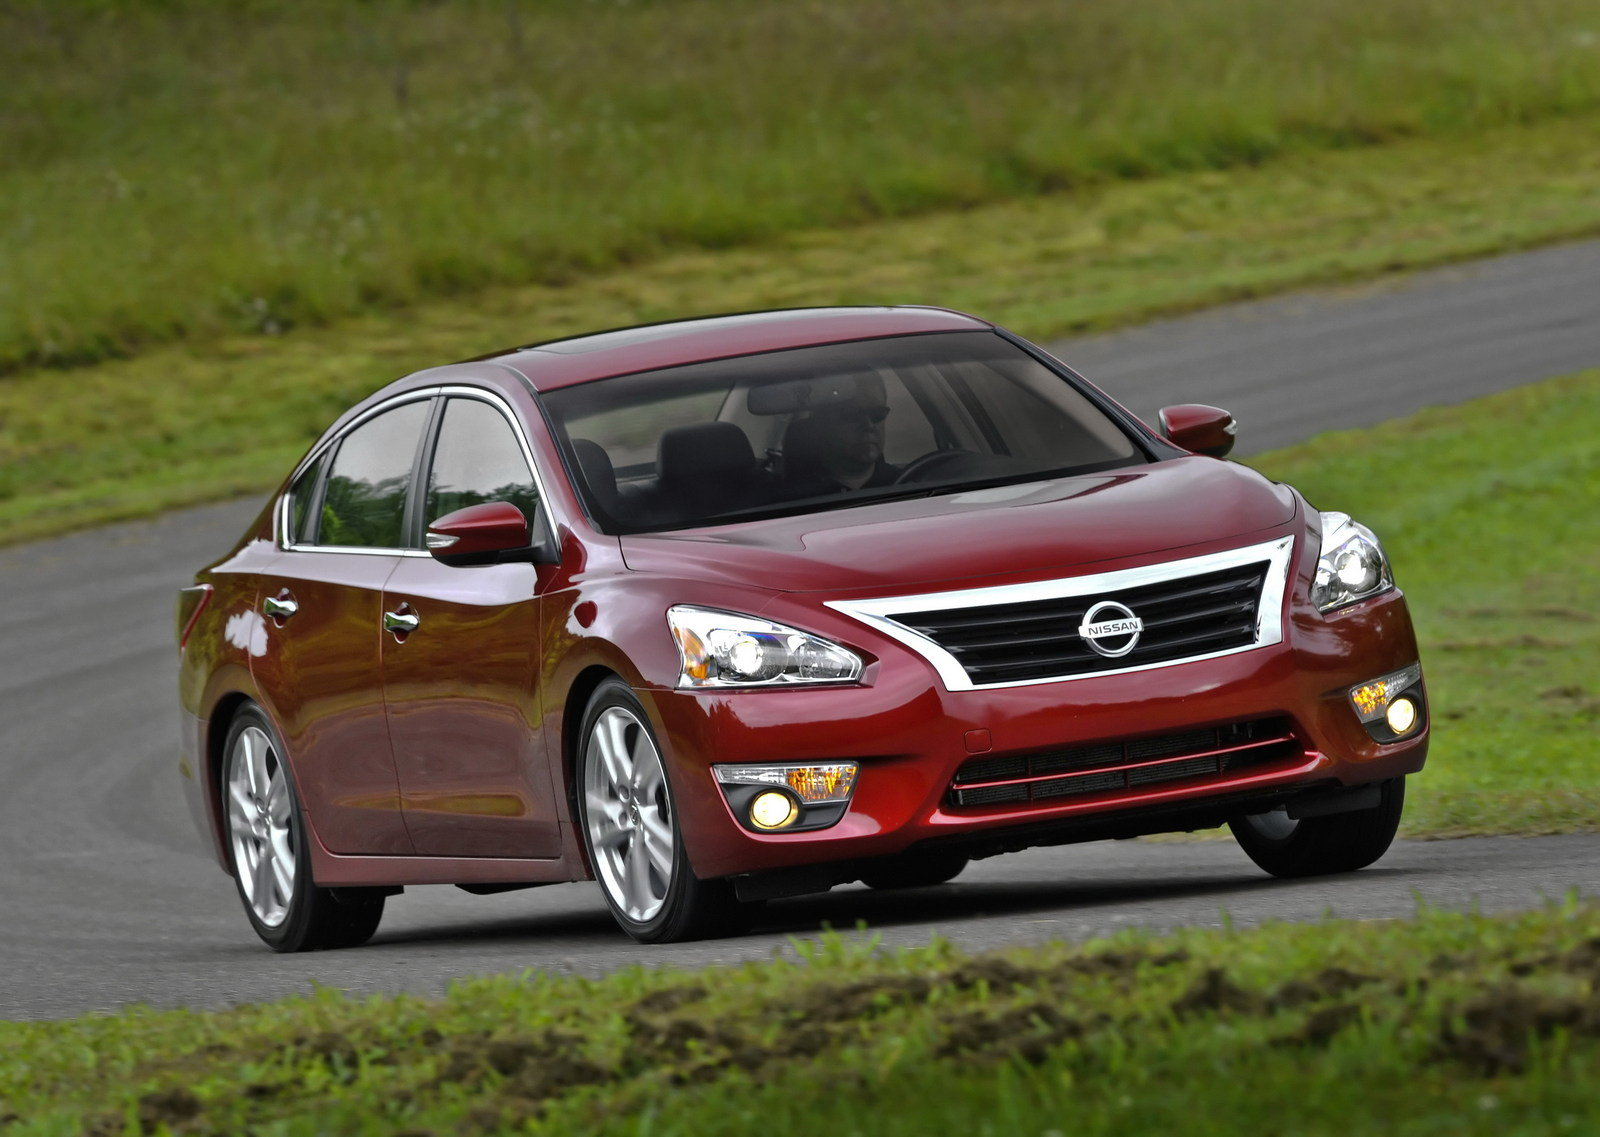 nissan altima 11_1600x0w nissan altima reviews, specs & prices top speed 1994 Nissan Altima Wiring Diagram at gsmx.co